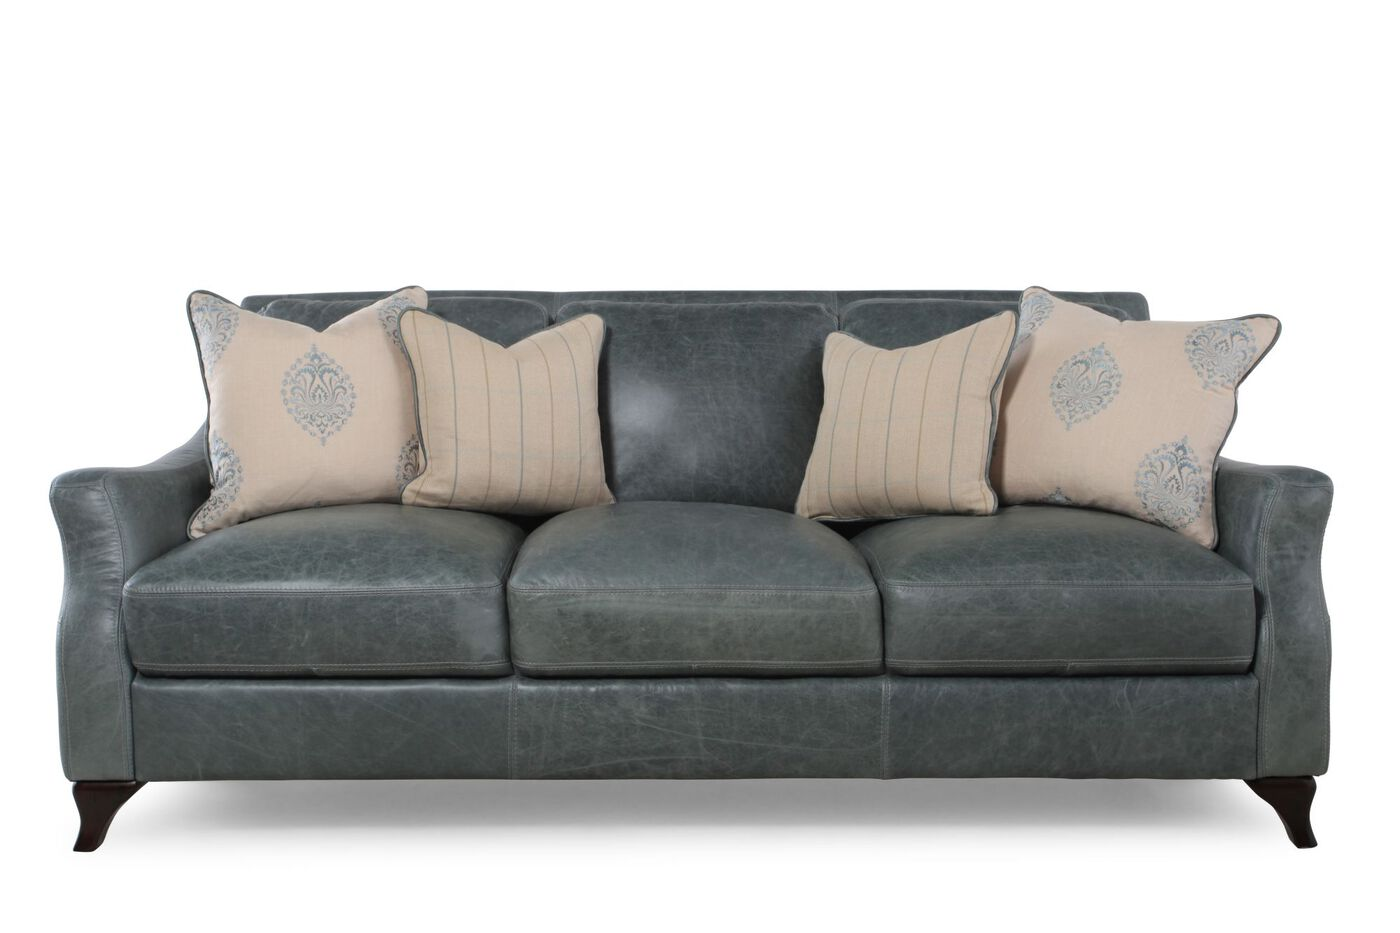 distressed leather sofa in teal mathis brothers furniture. Black Bedroom Furniture Sets. Home Design Ideas